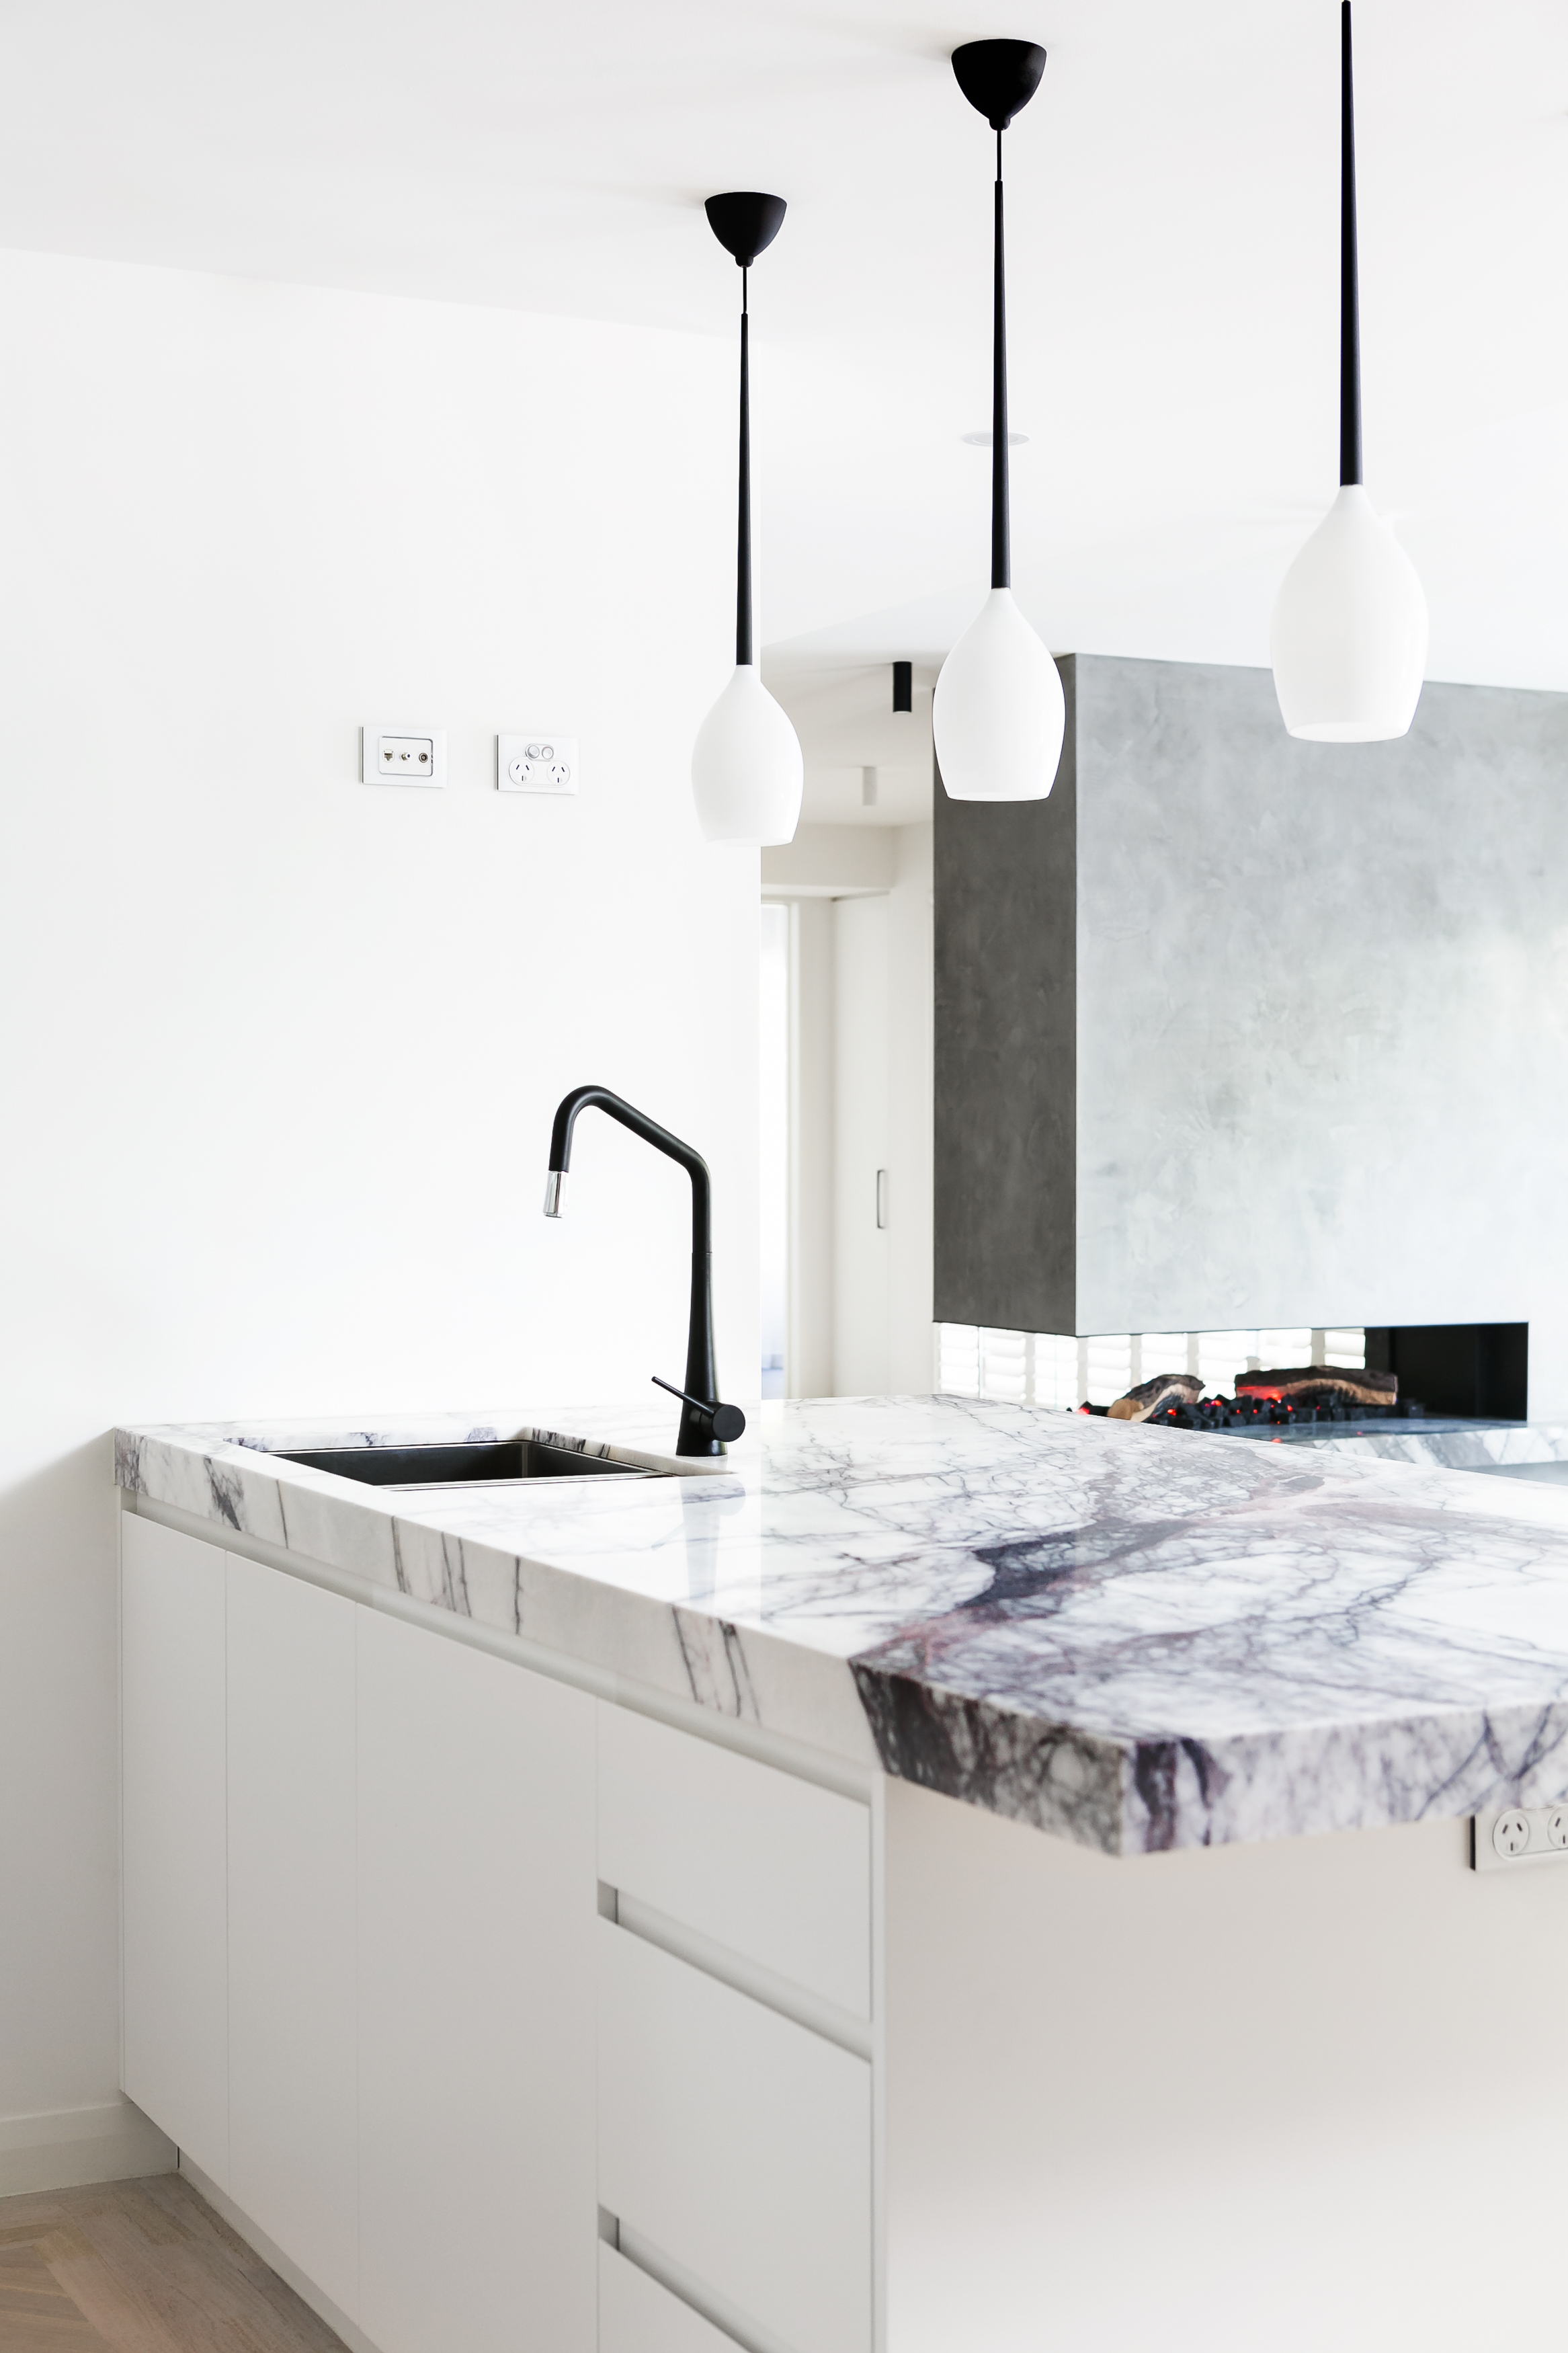 The granite countertop and sink with black faucet stand below a trio of black stemmed, white shade pendant lamps. The custom open fireplace can be seen in background at right.